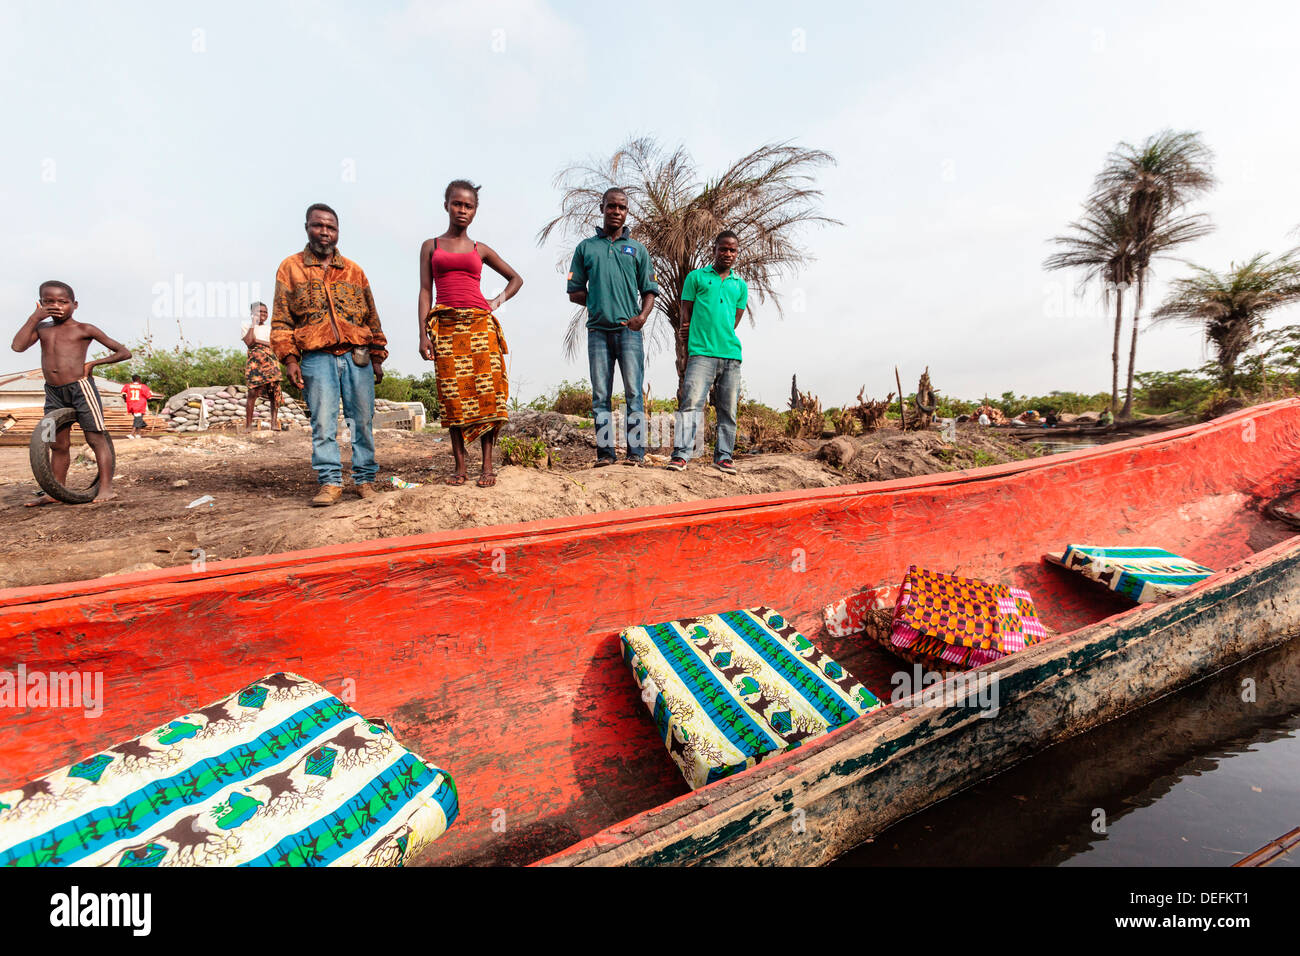 Africa, Liberia, Monrovia. People gathered by traditional pirogue boat on the Du River. - Stock Image